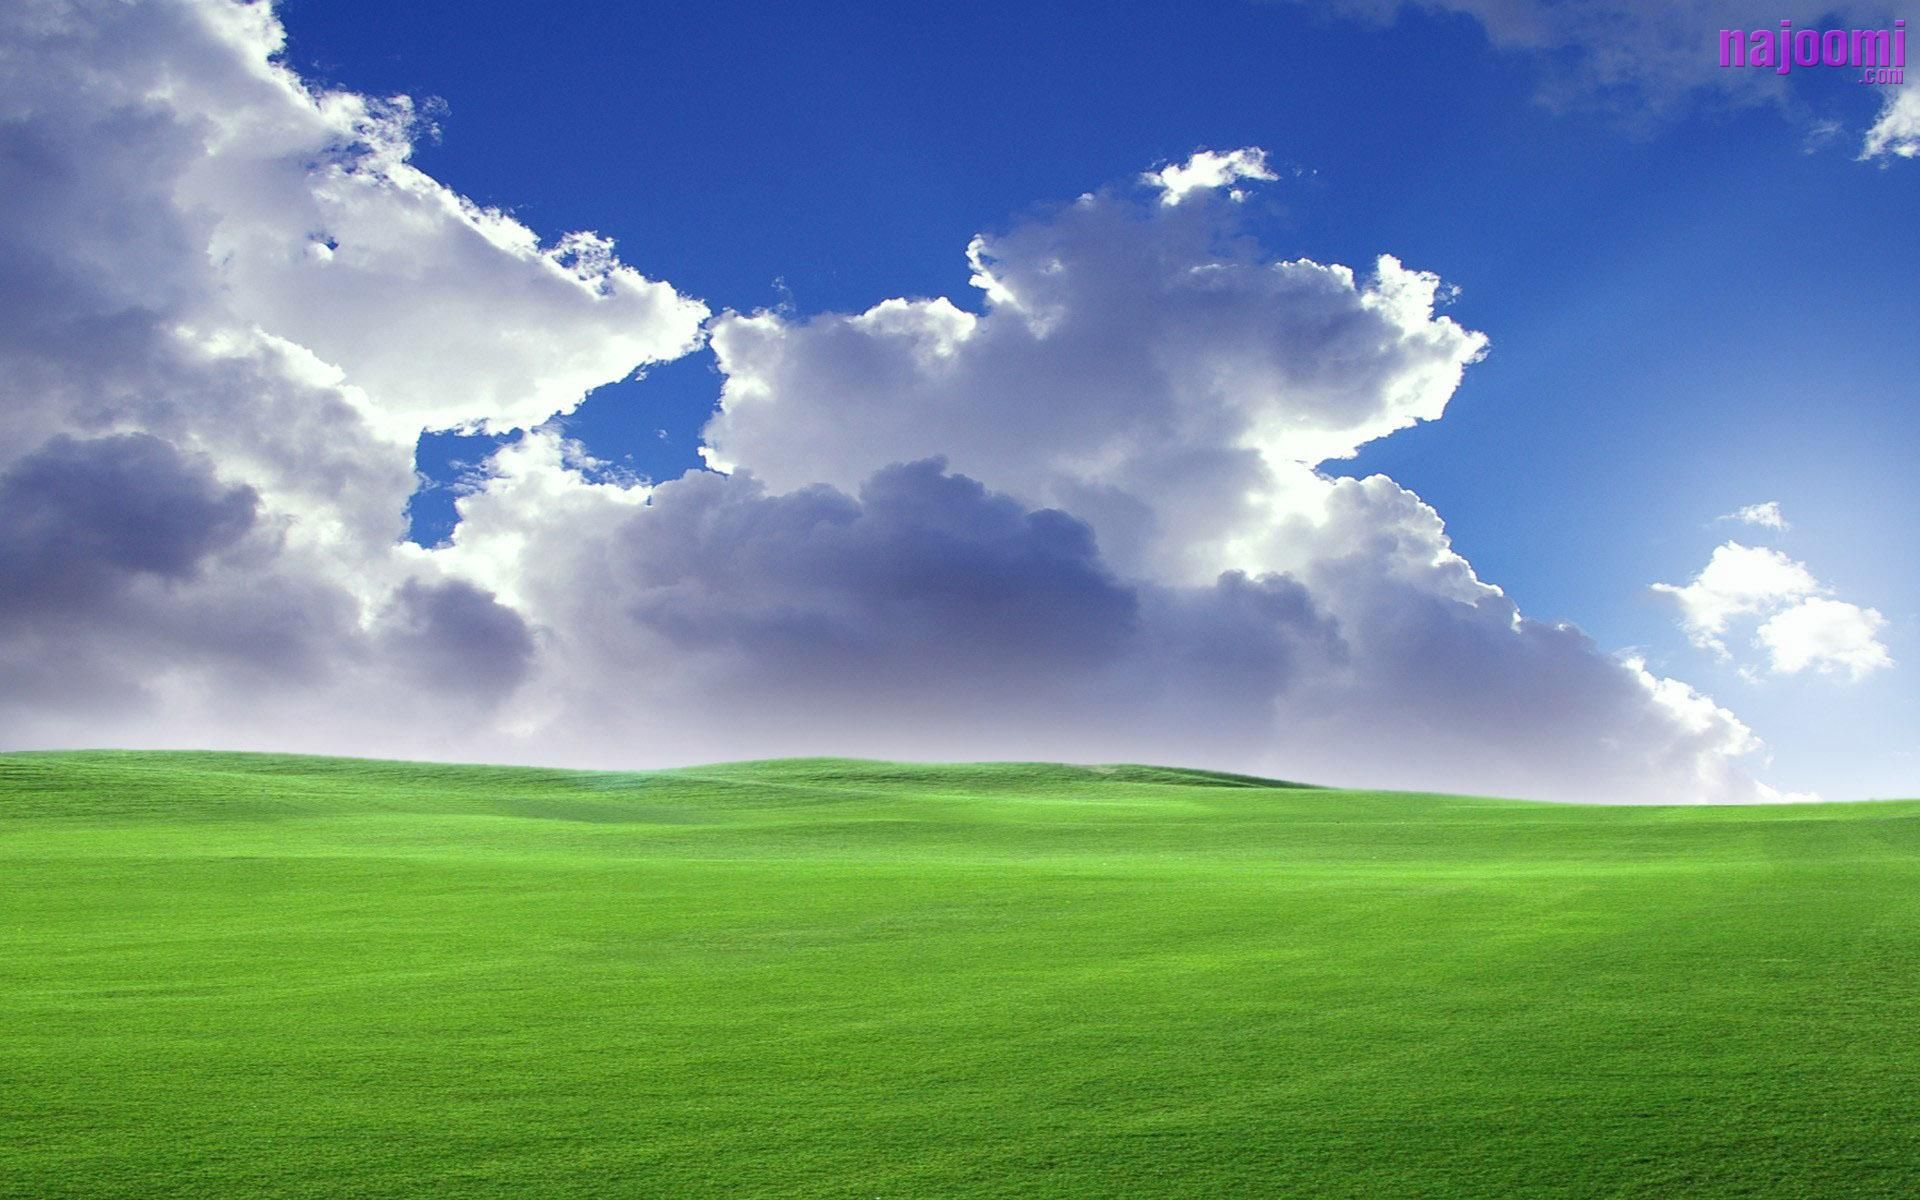 windows xp desktop backgrounds tj kelly 1920a—1200 windows xp desktop wallpapers 51 wallpapers